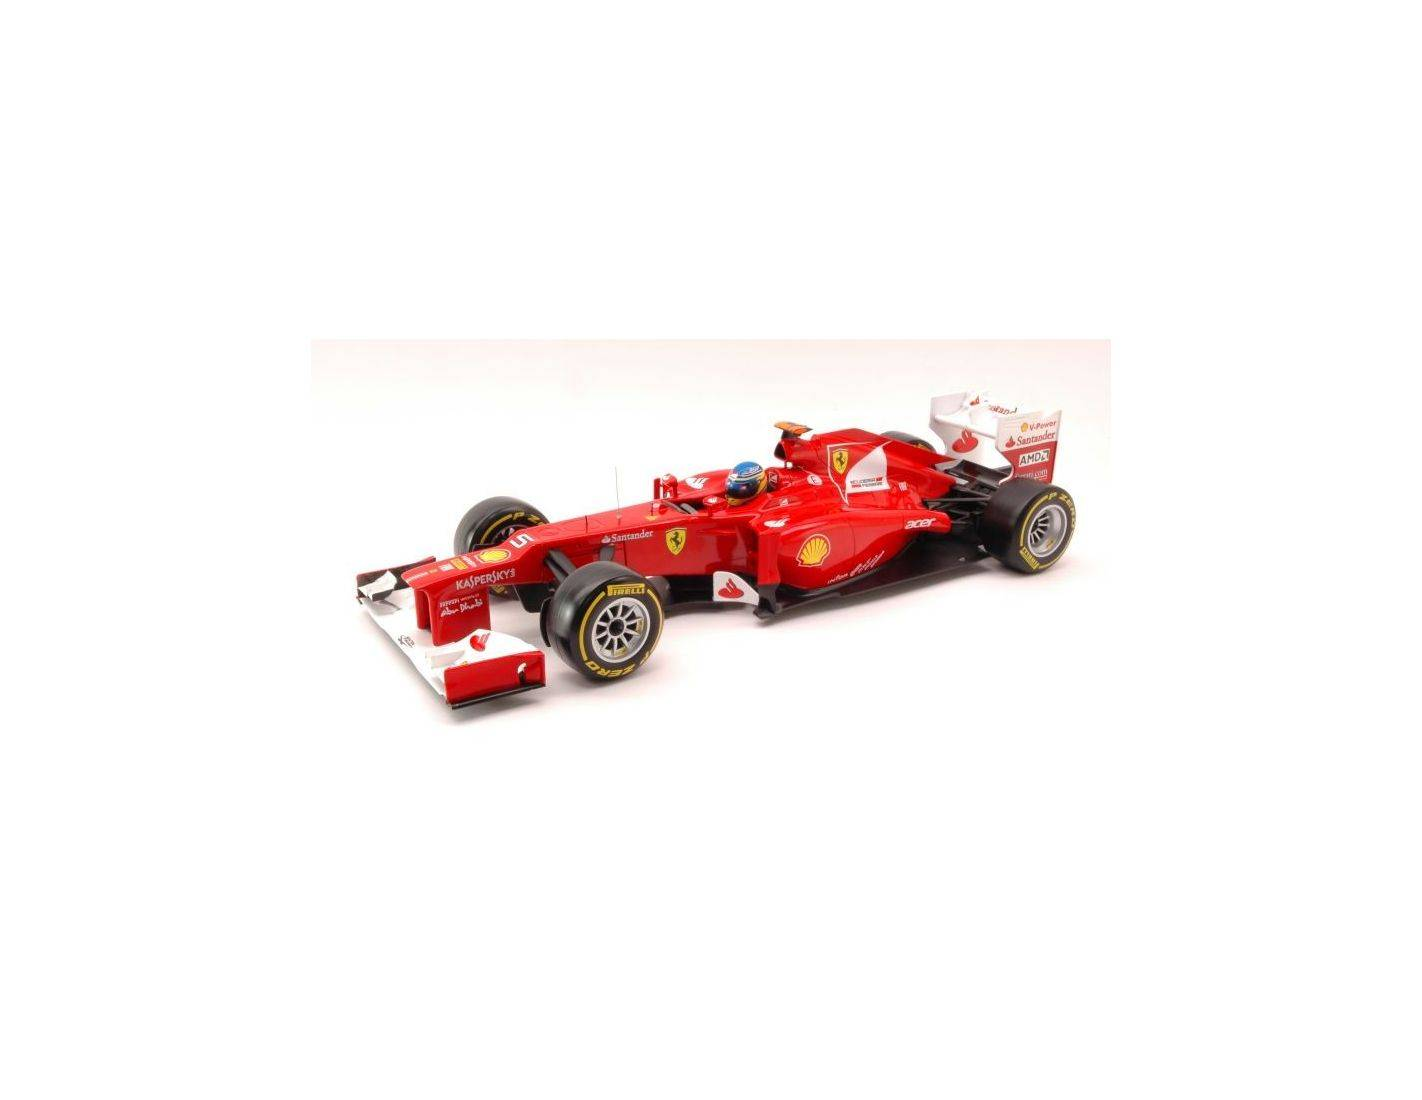 Hot Wheels HWX5520 FERRARI F.ALONSO 2012 1:18 Modellino